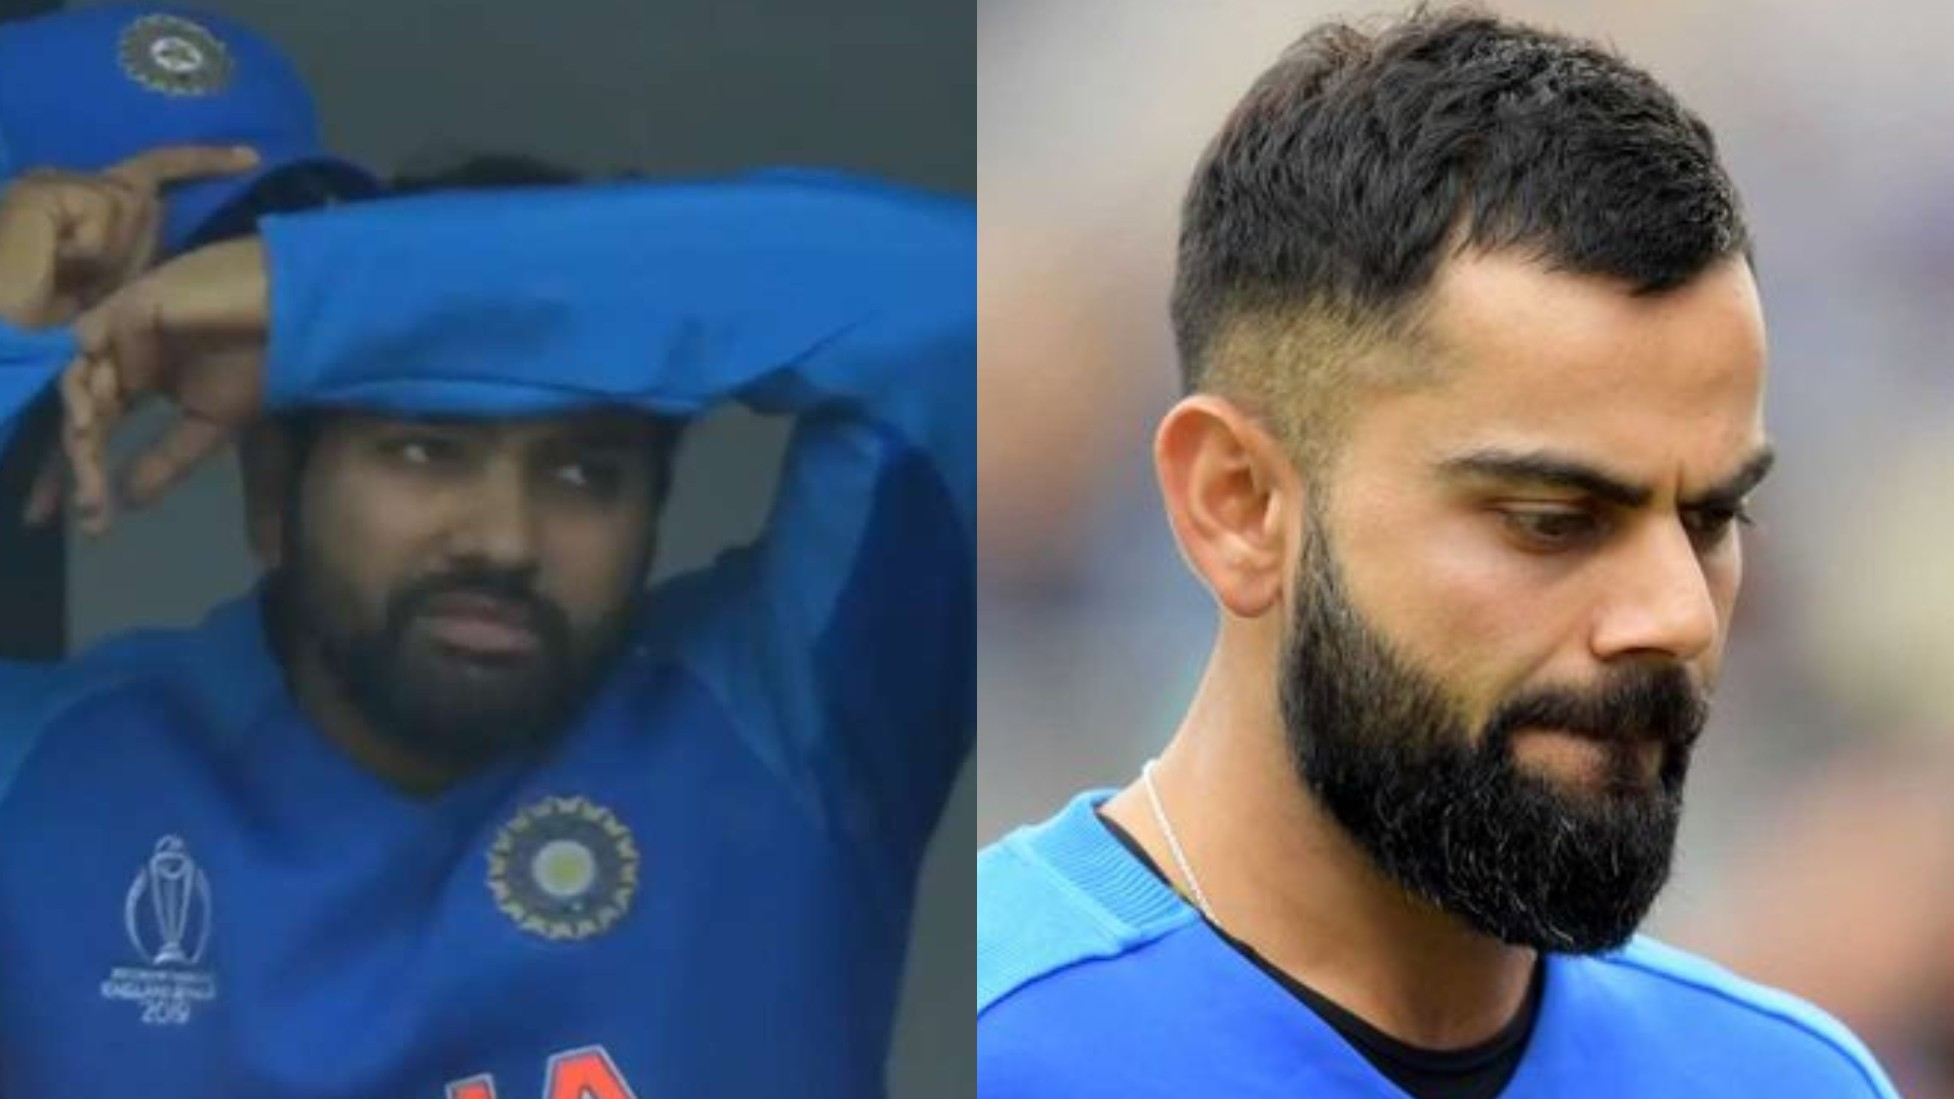 Virat Kohli and Rohit Sharma may miss out whenever Team India resumes outdoor training